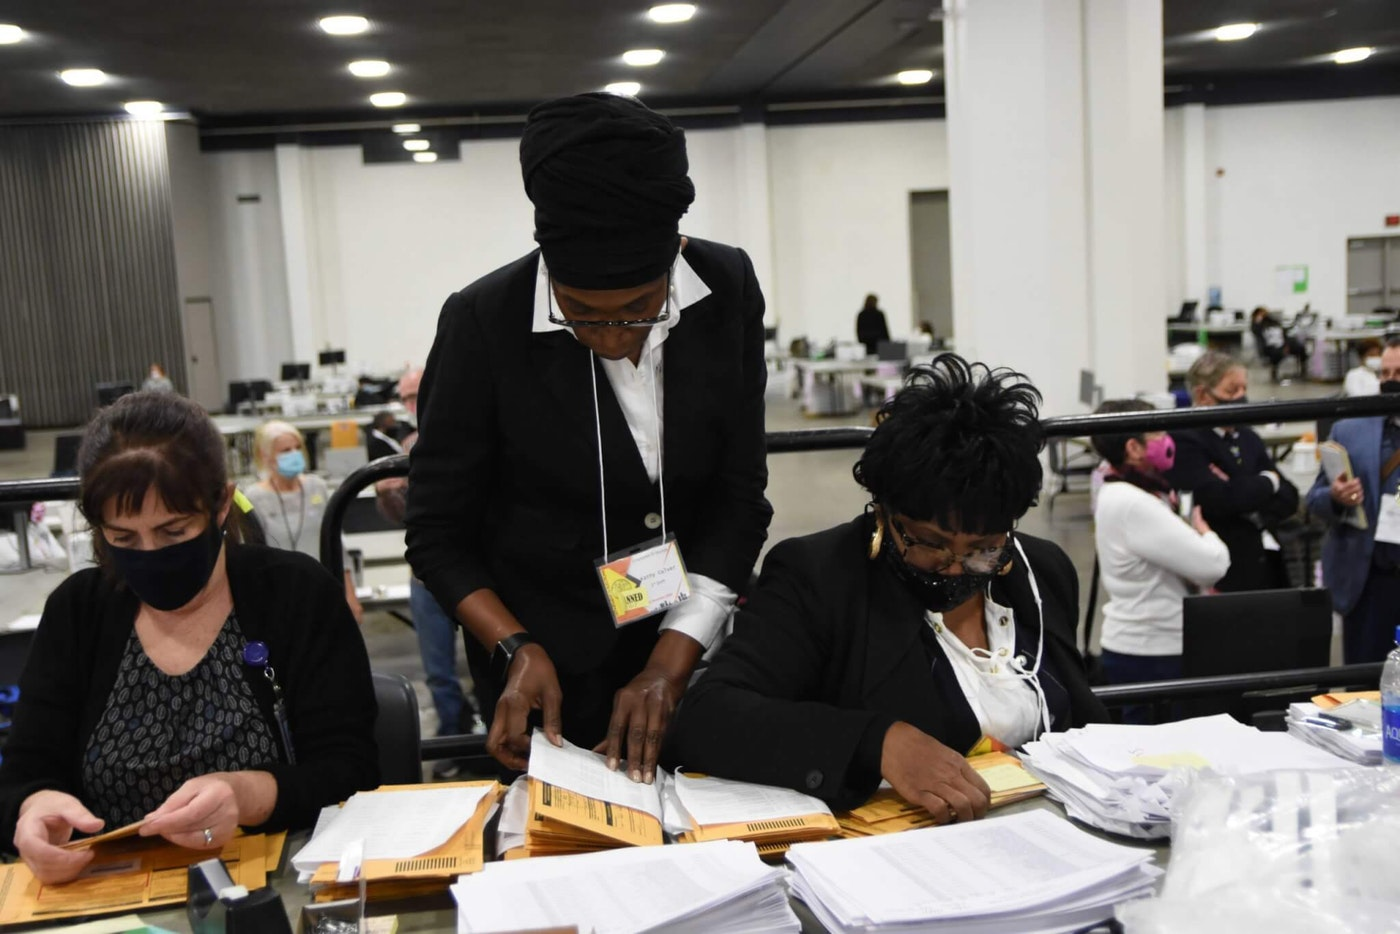 Inside Detroit's counting location at the TCF Center. Photo by Montez Miller.